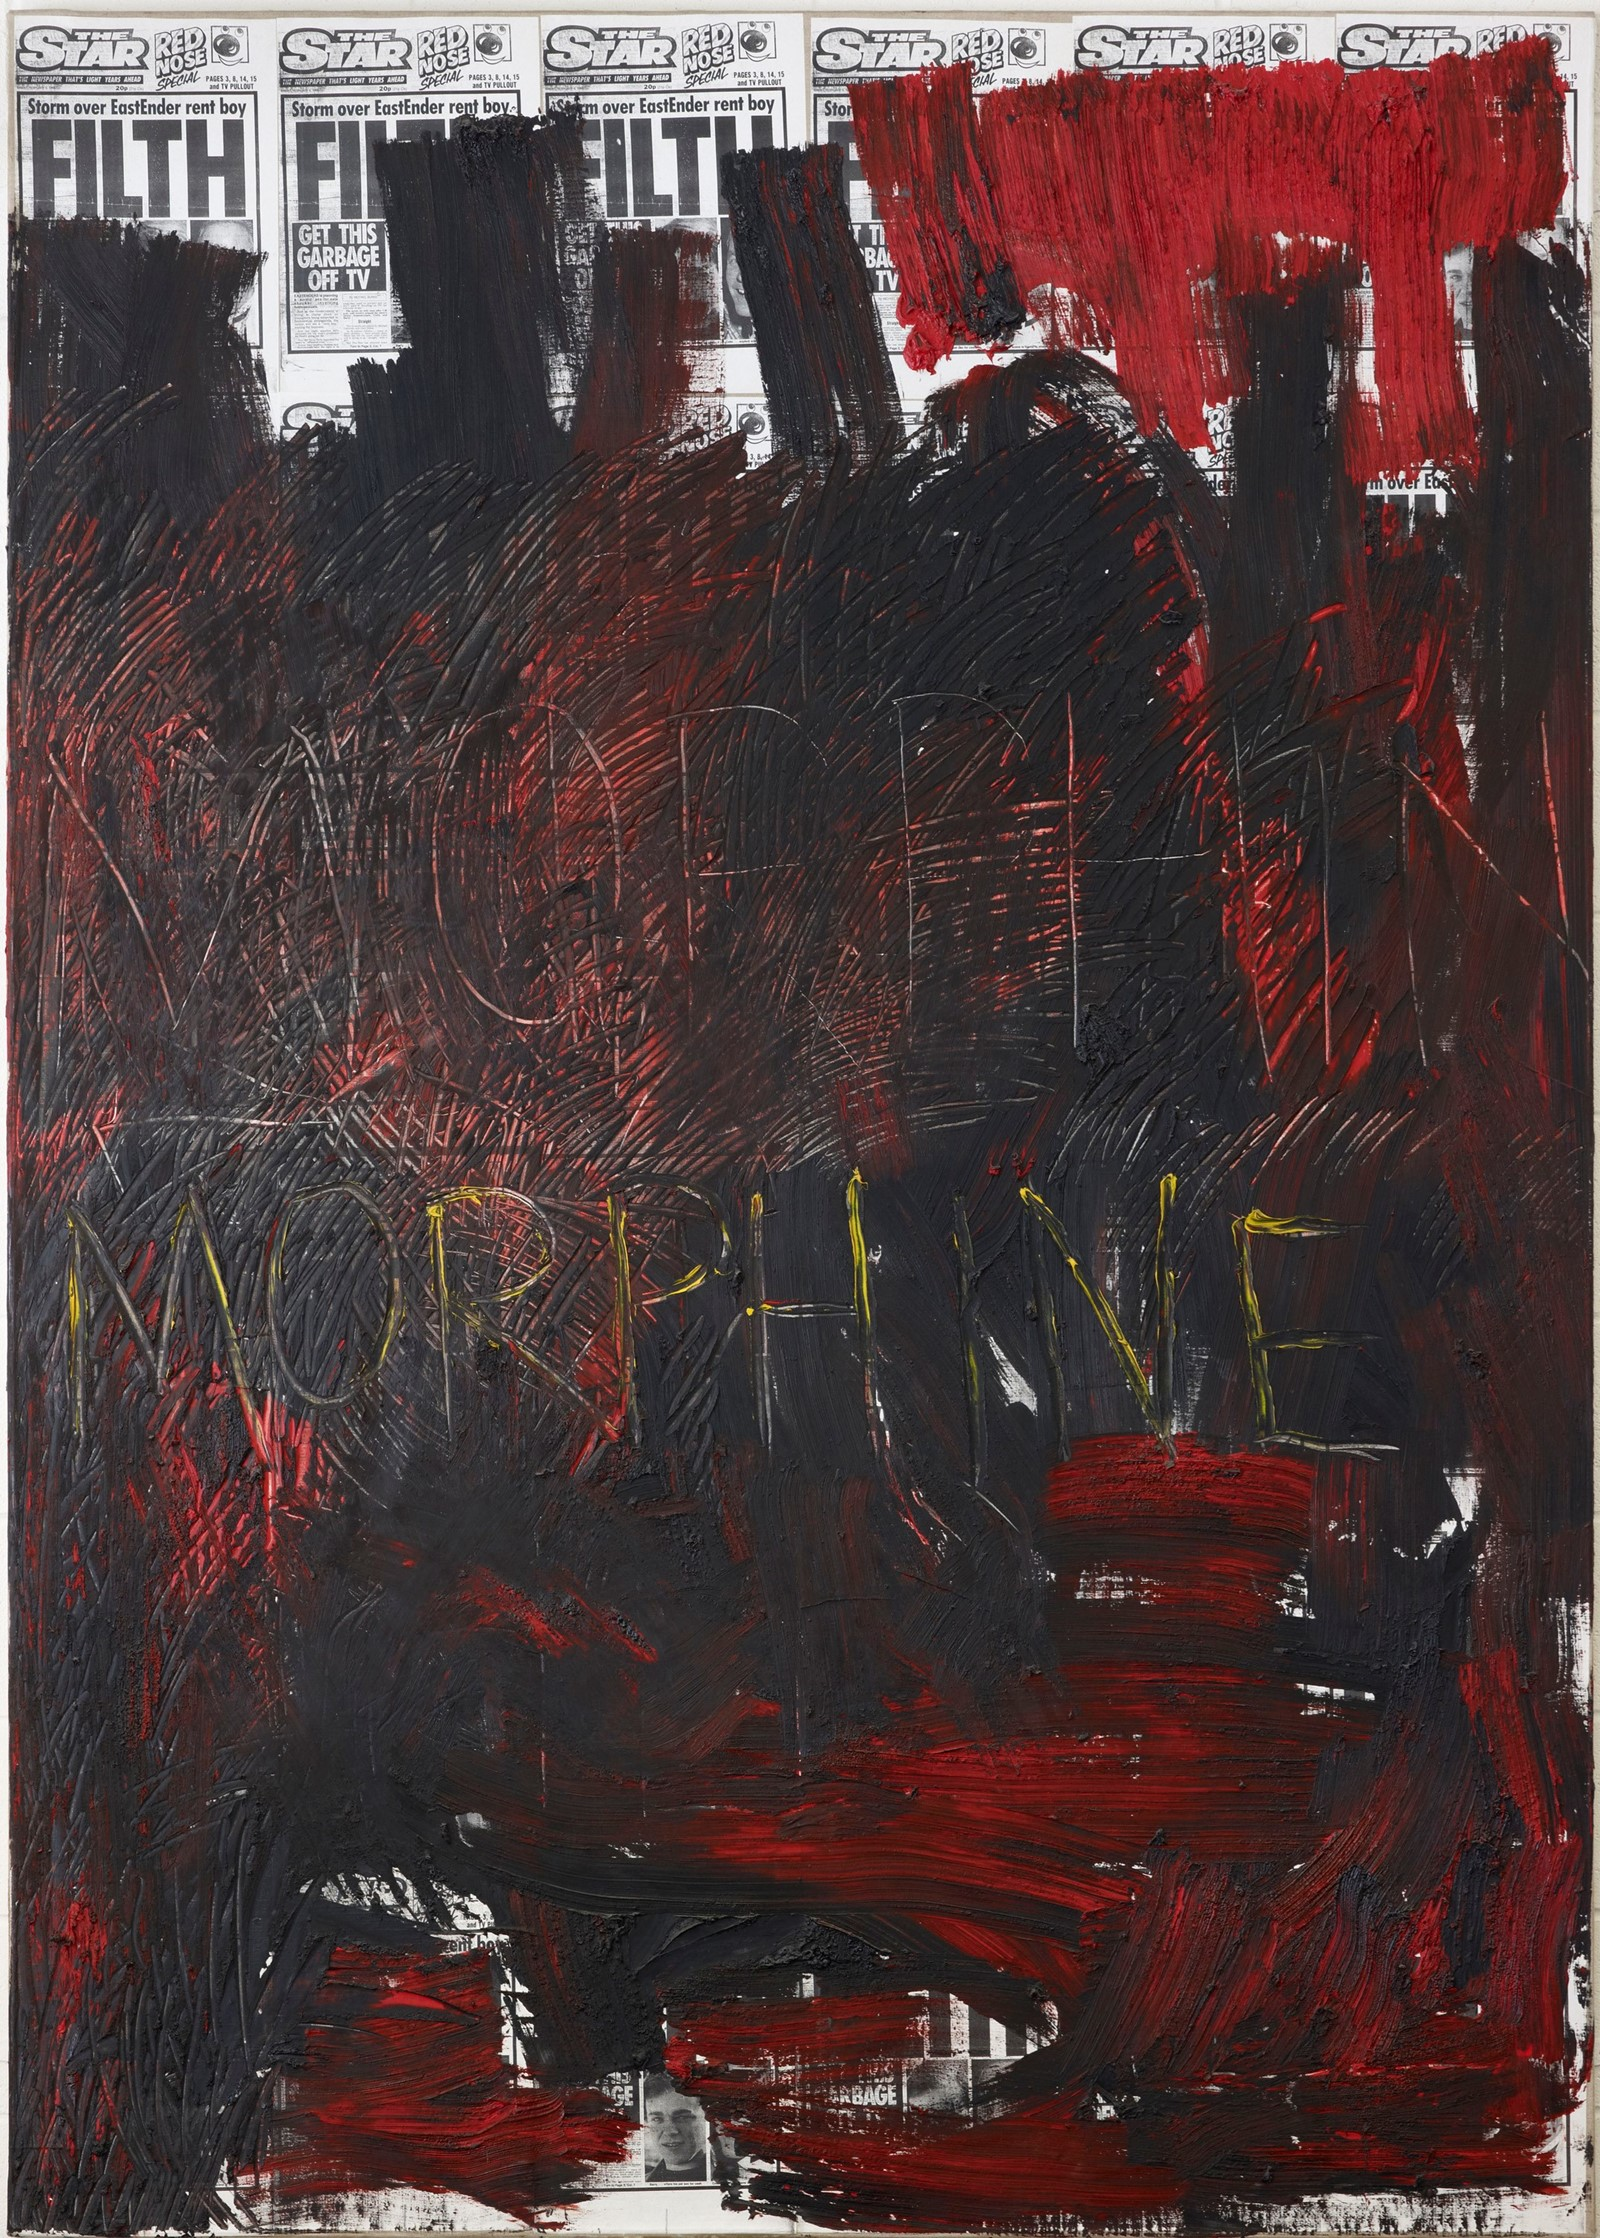 3. Morphine, 1992, Oil on canvas. 251.5 x 179cm, A